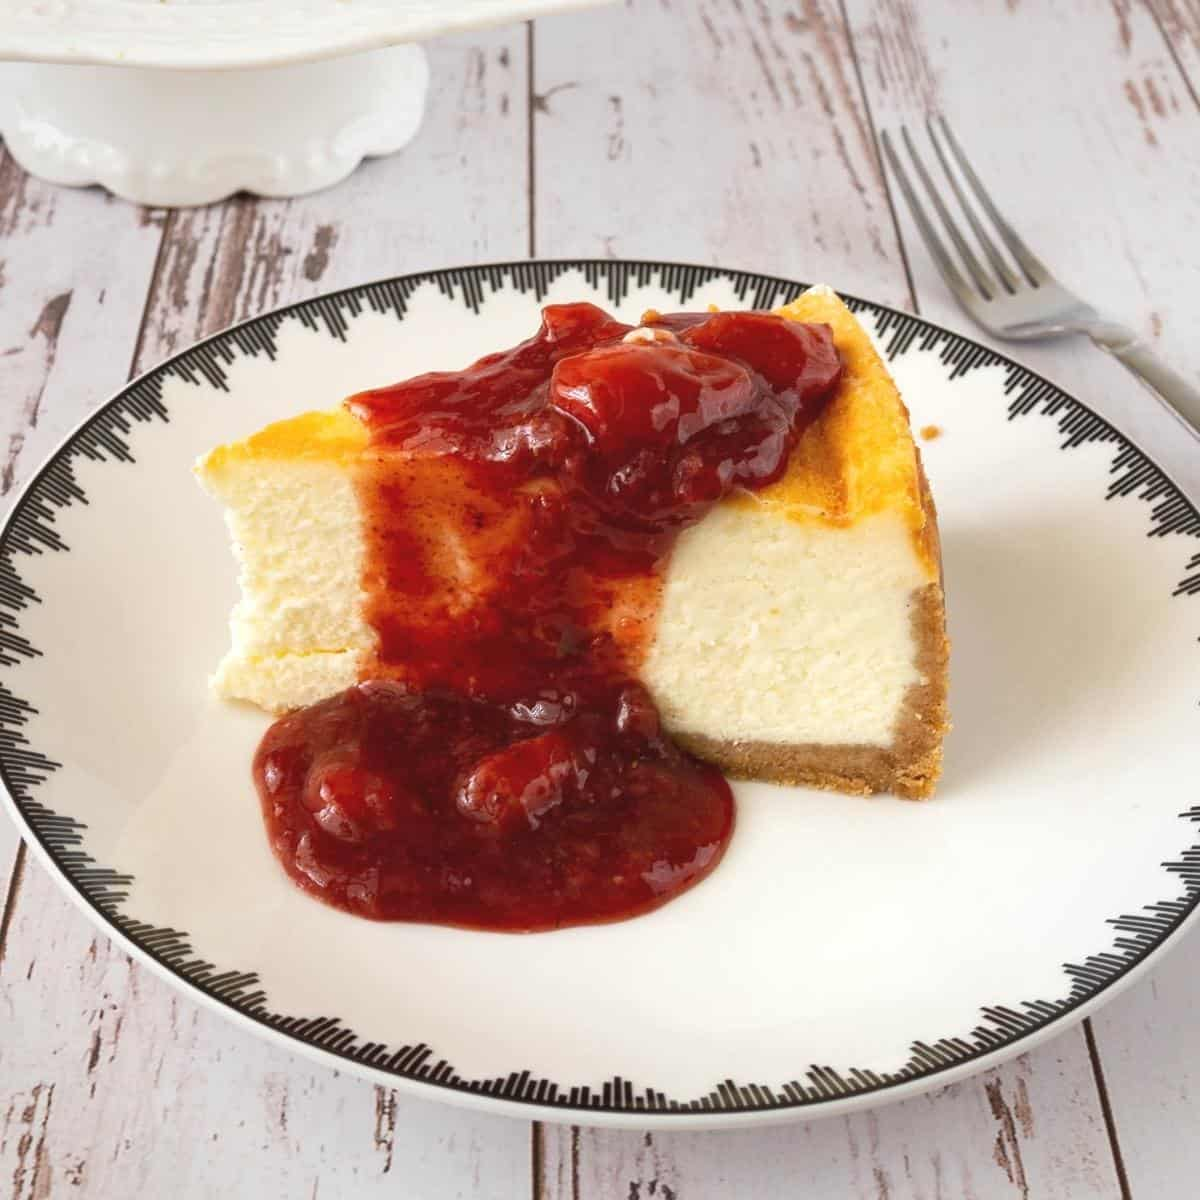 A slice of strawberry cheesecake on a plate.